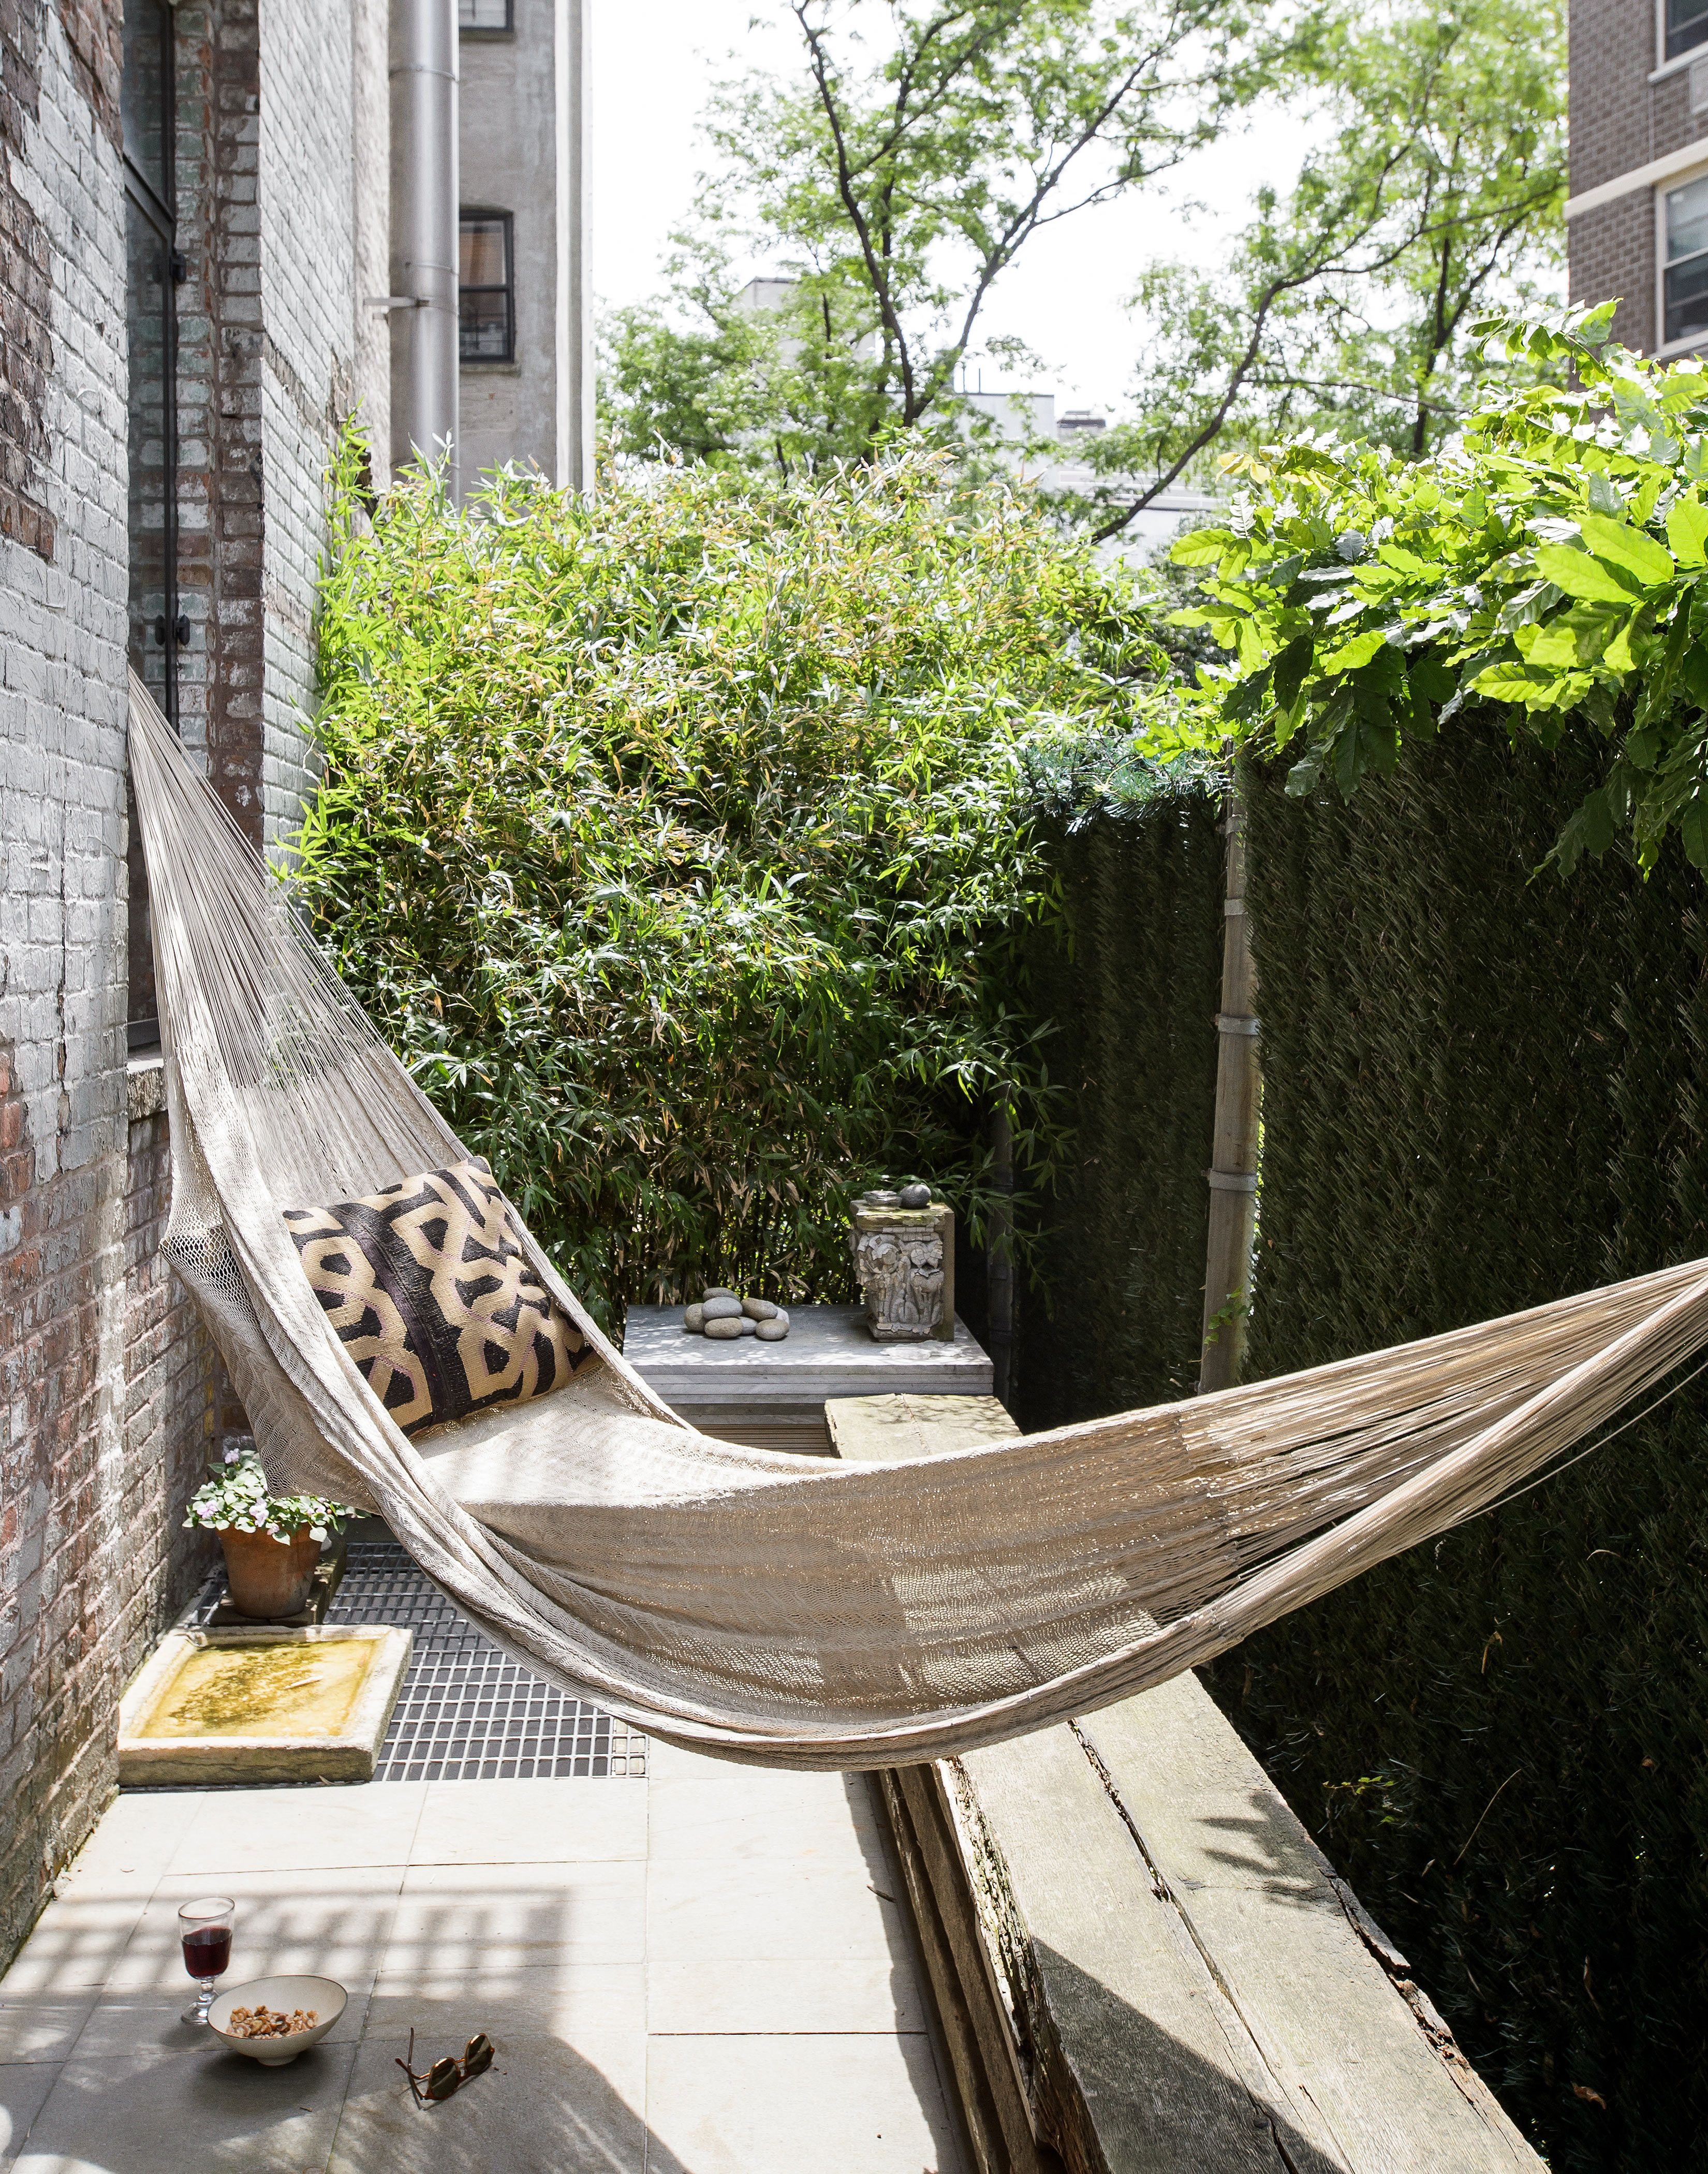 Being clever is key with small outdoor spaces, this hammock ...